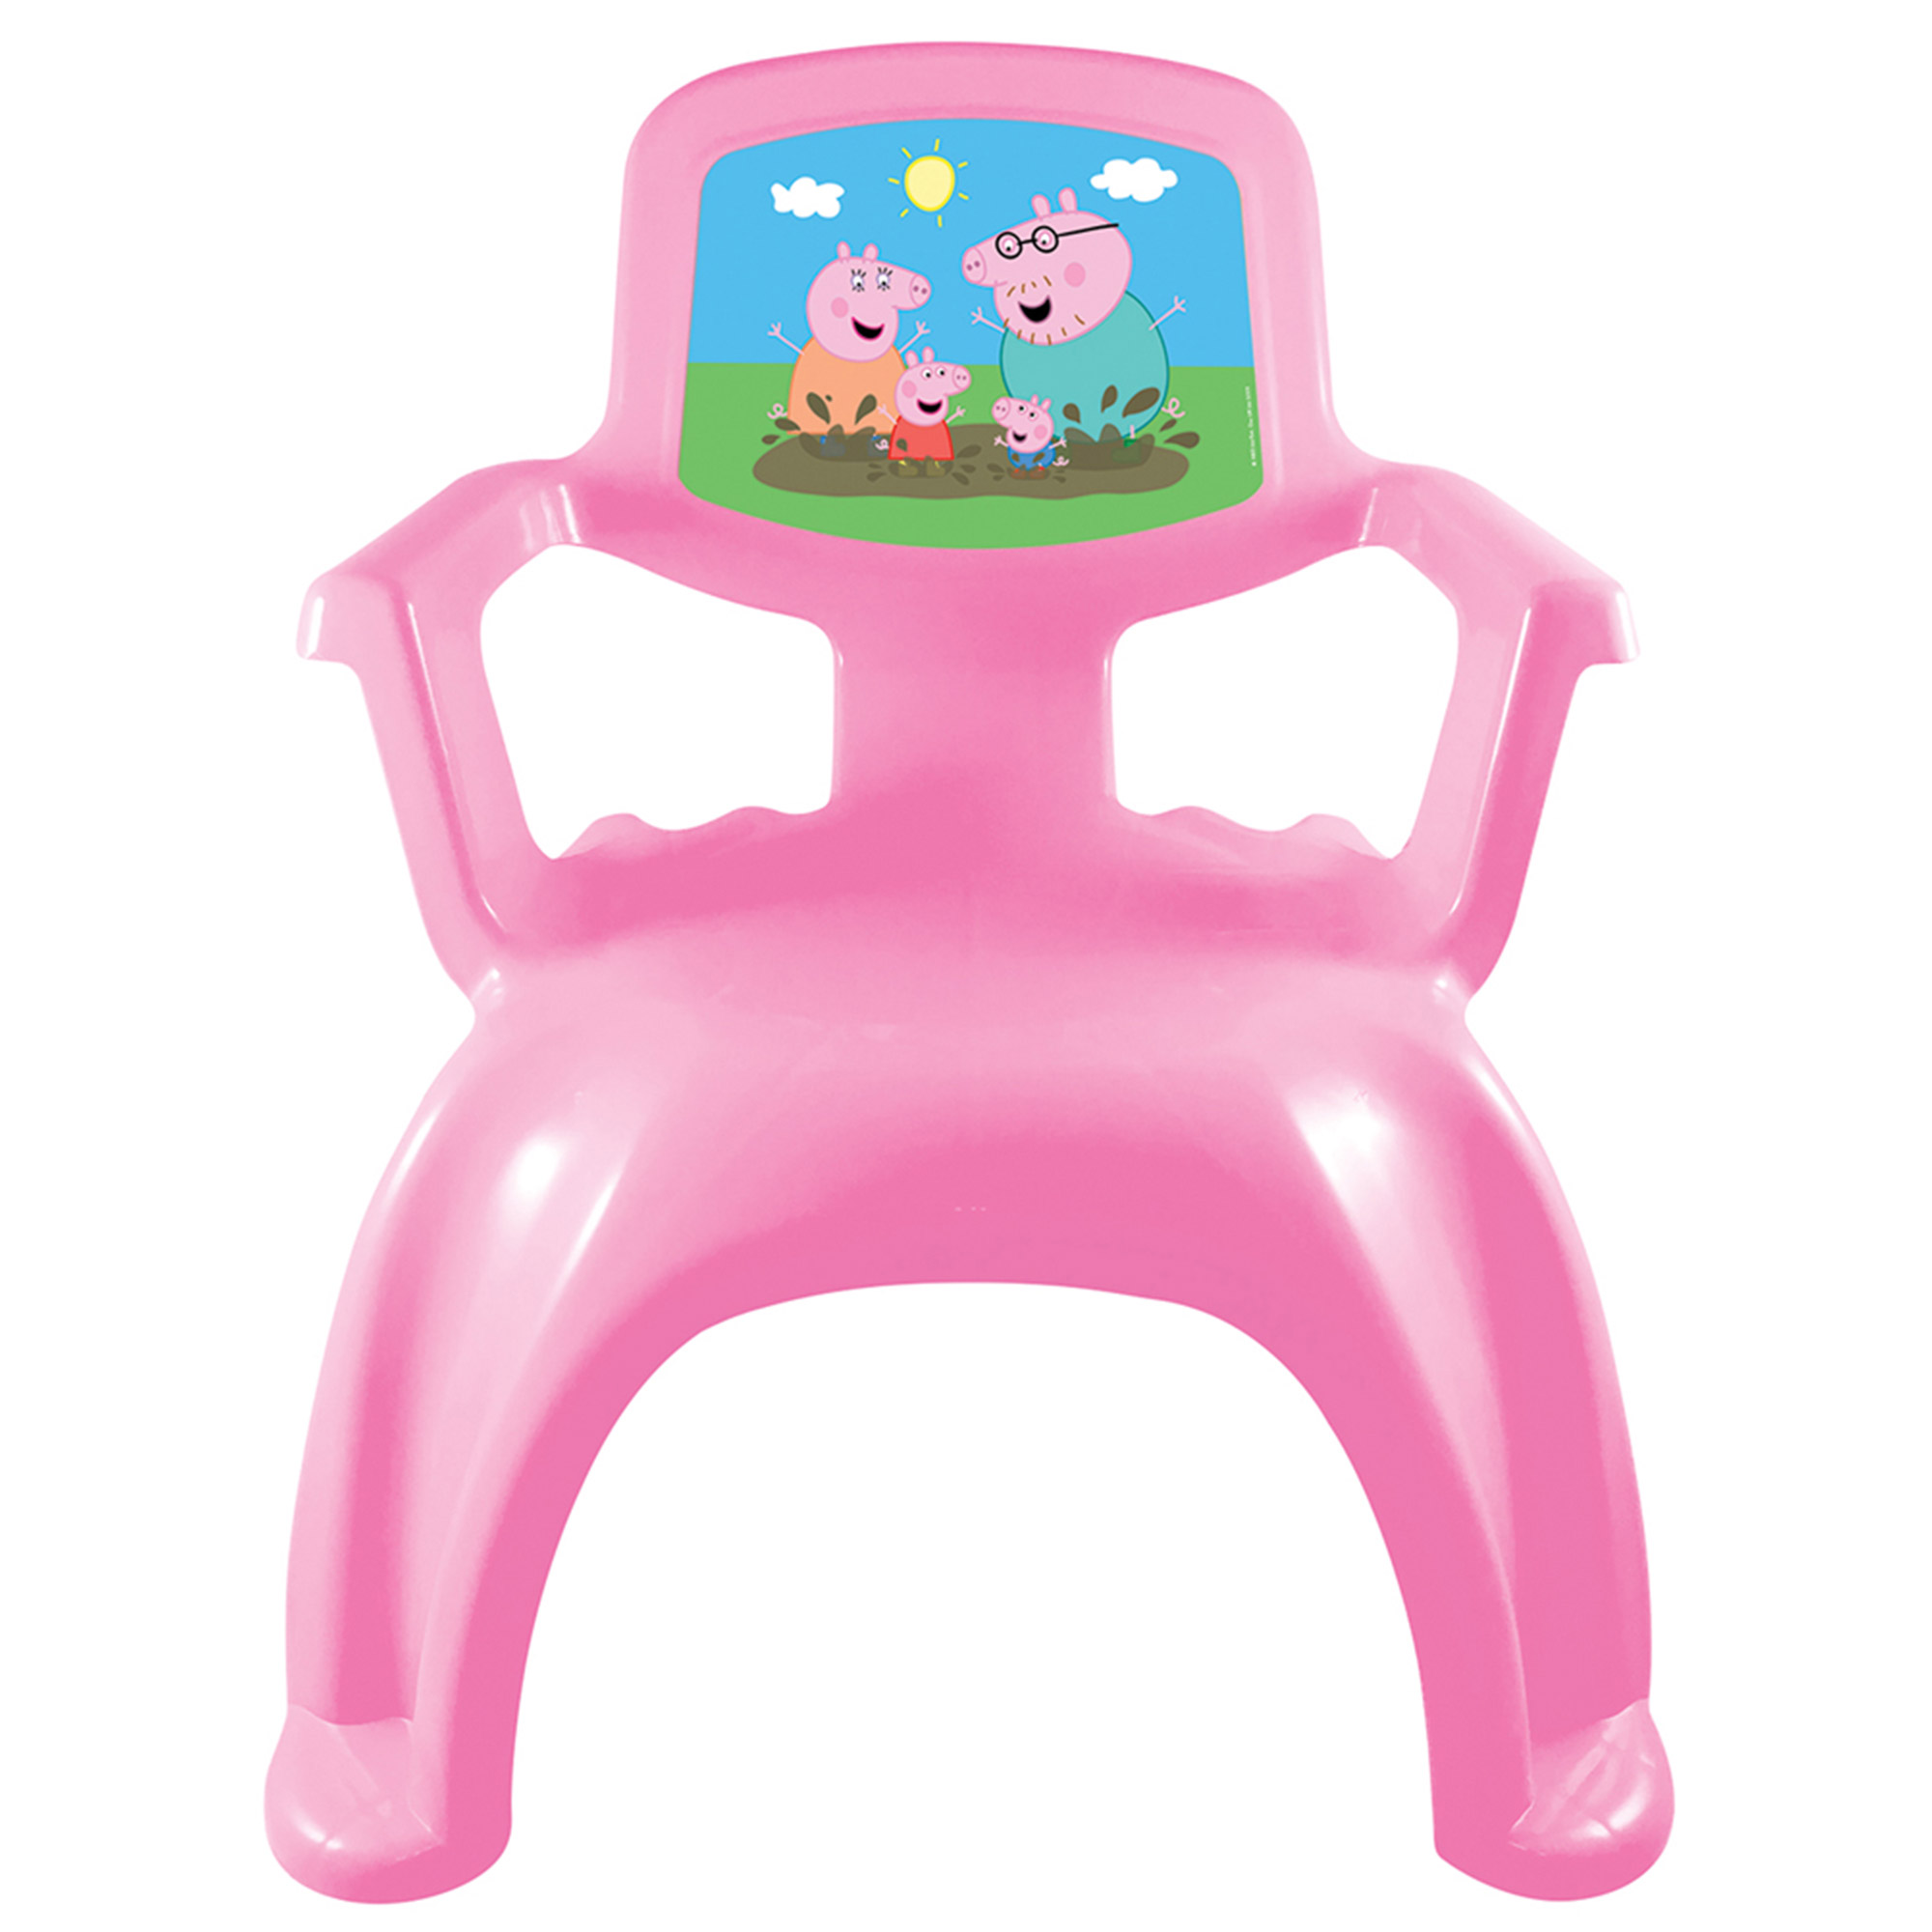 Peppa Pig Resin Chair 2.0